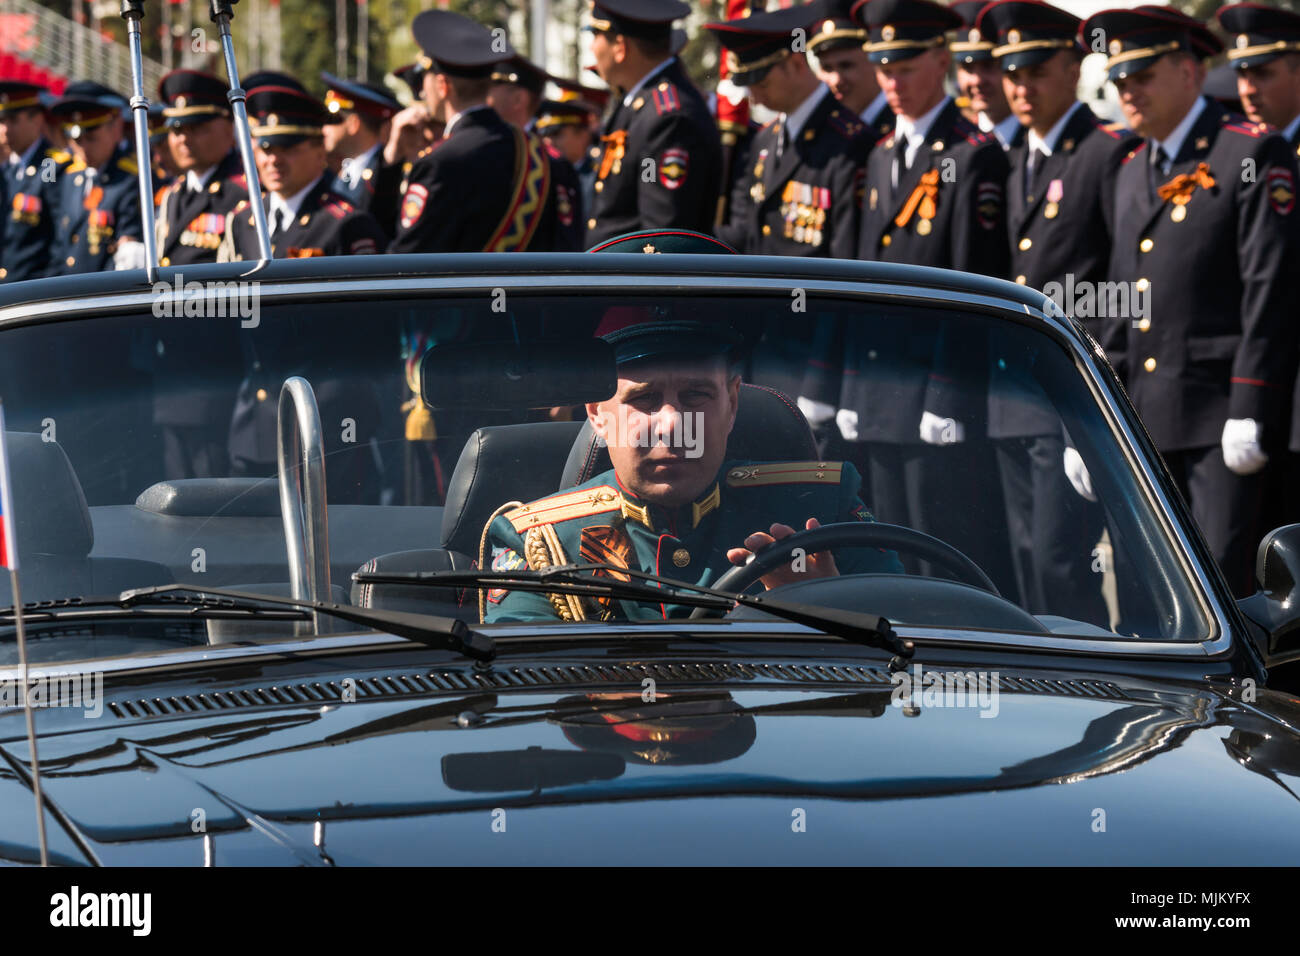 SAMARA - MAY 5: Dress rehearsal of military parade during celebration of the Victory day in the Great Patriotic War - russian soldiers marching on the - Stock Image